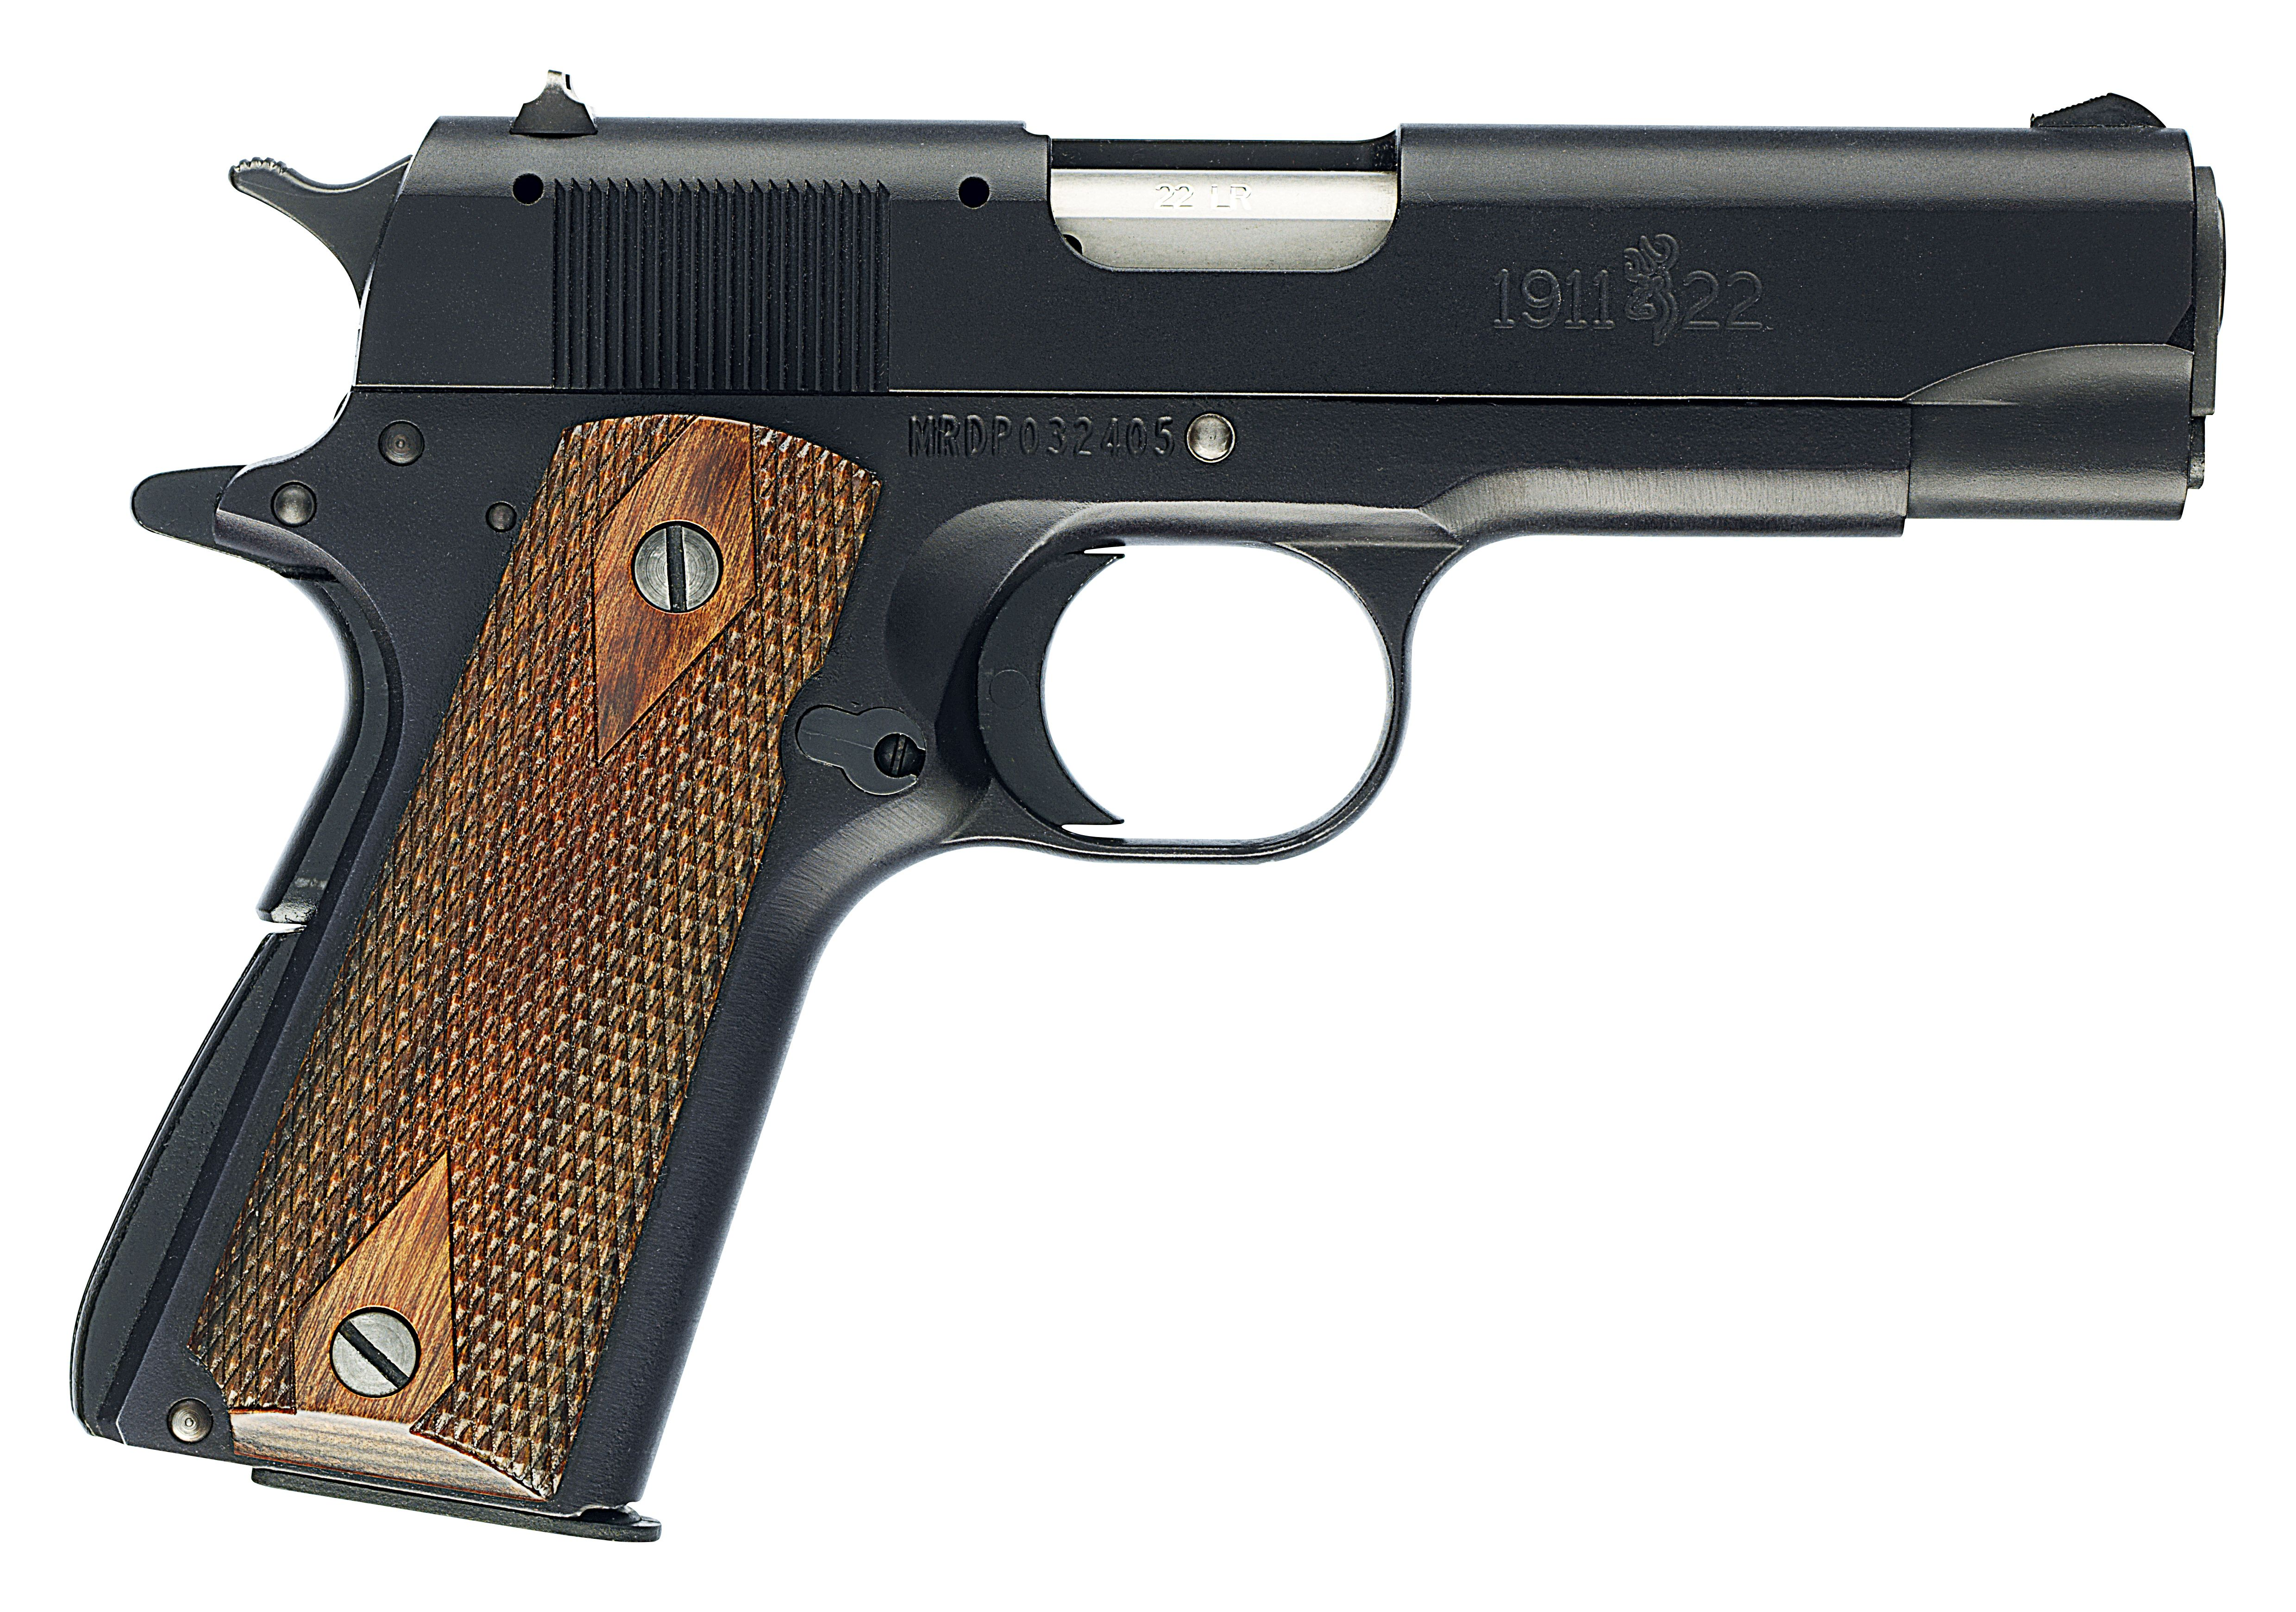 The Browning 1911-22 A1 Compact .22 LR.